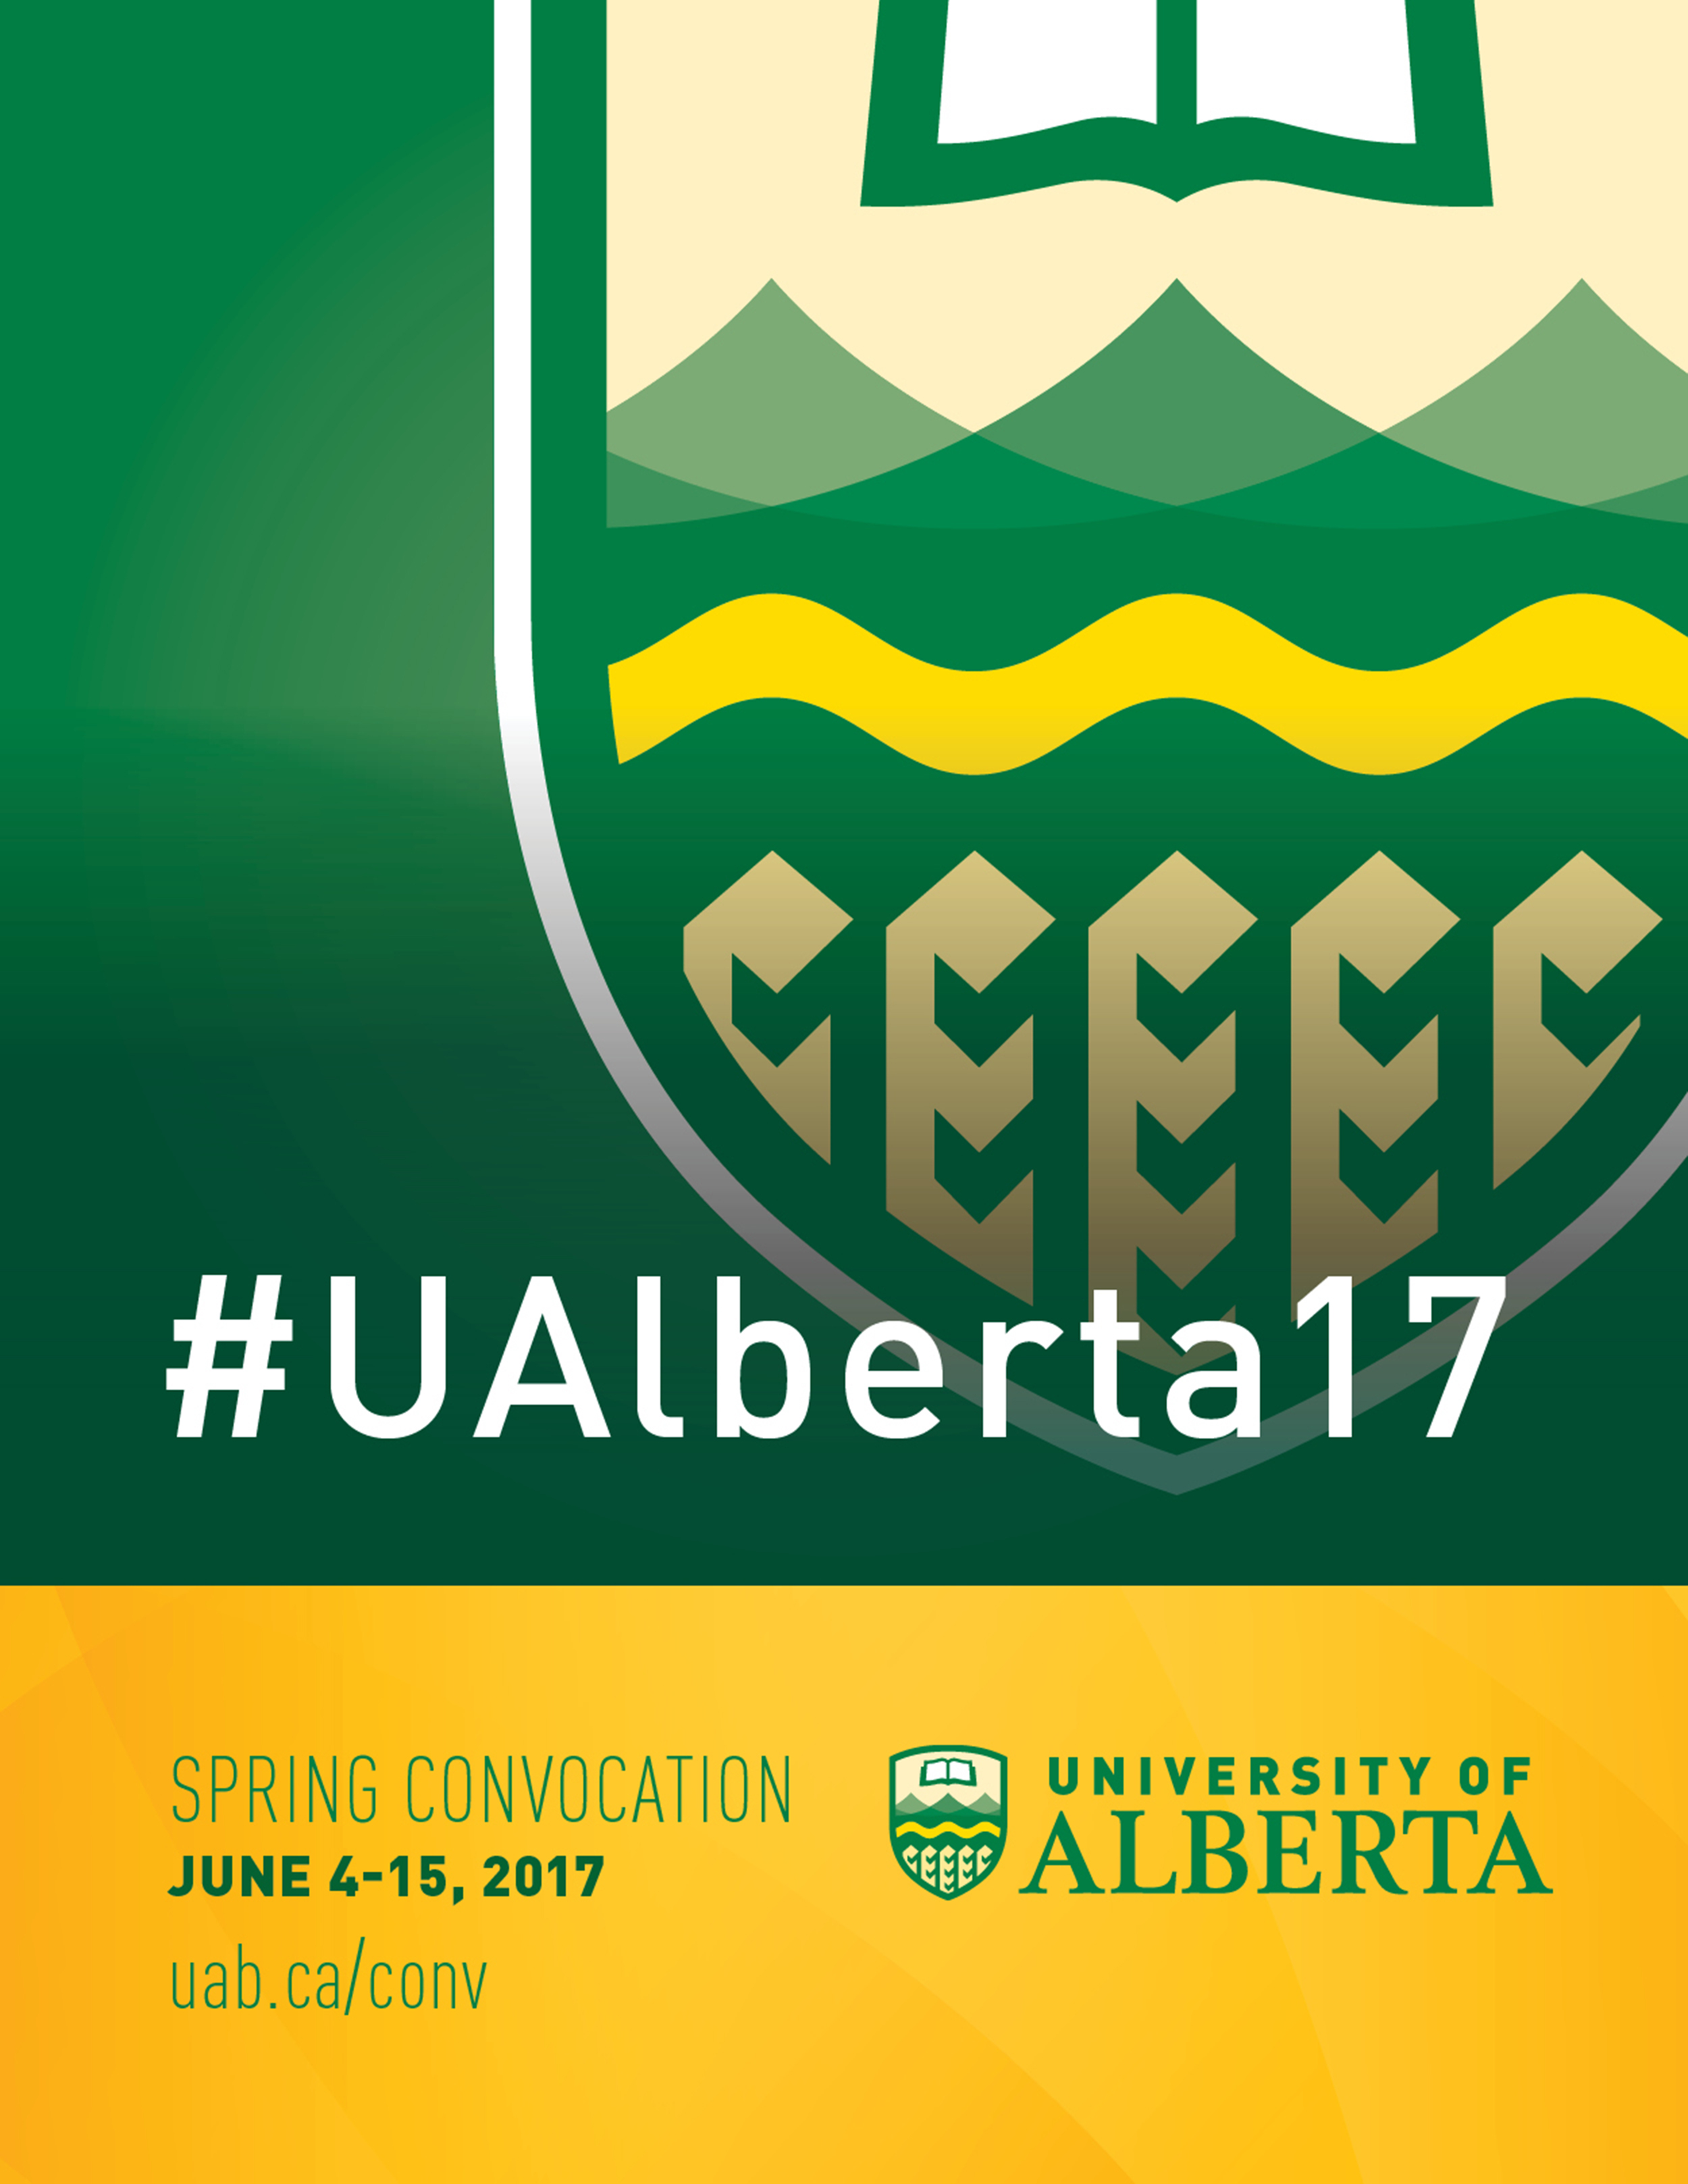 Graphic: UAlberta fall convocation 2016, Nov. 15-16 #UAlberta16